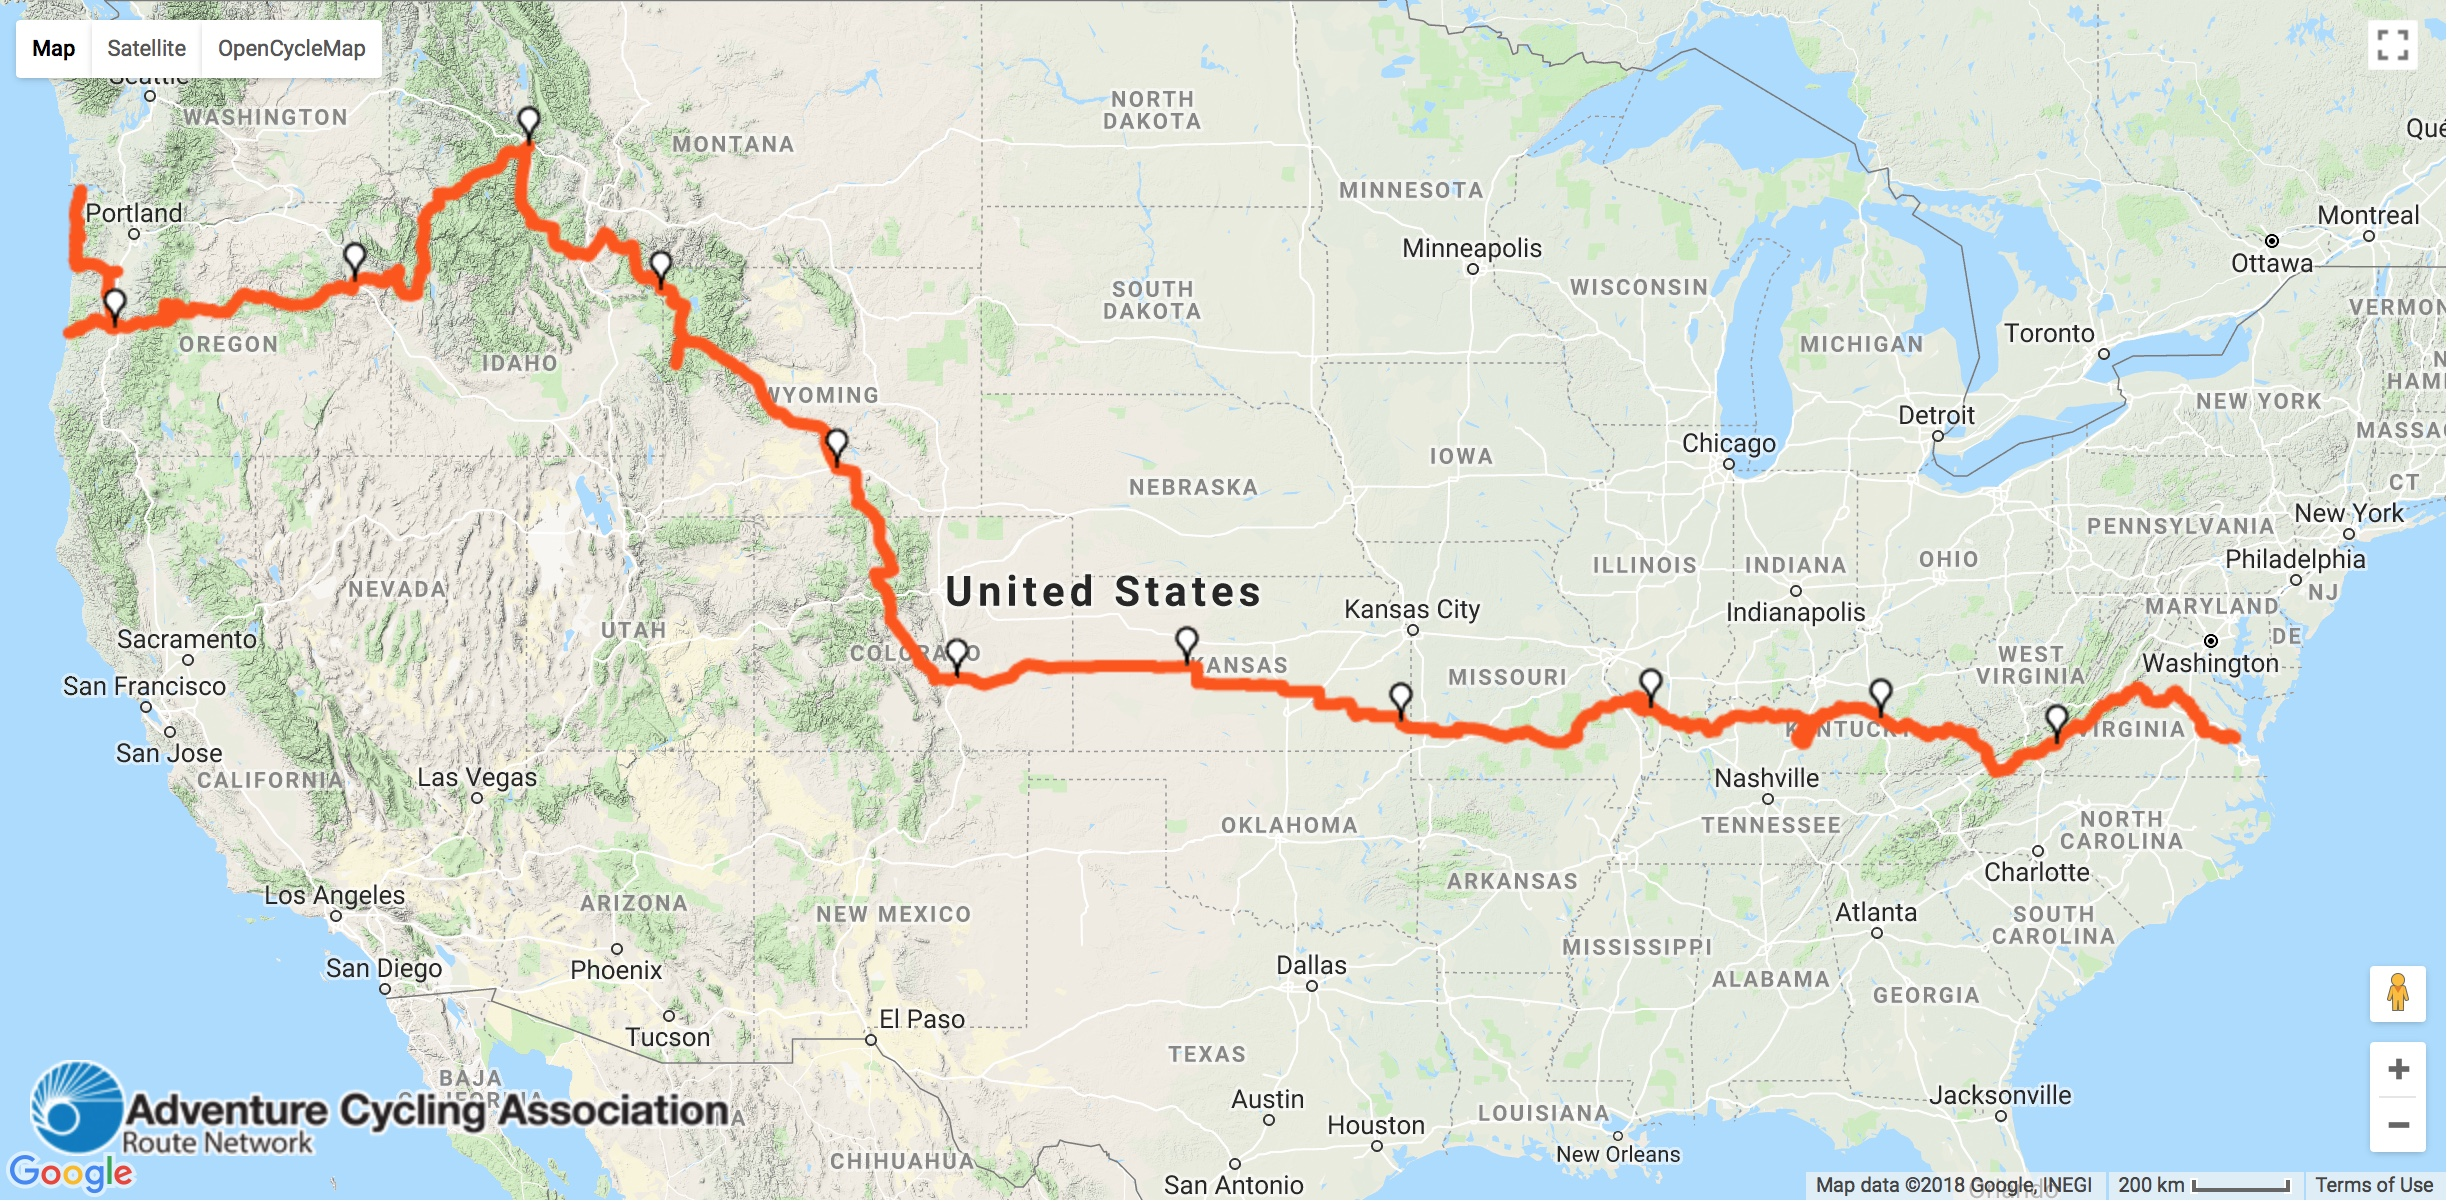 Transamerica Trail Map.jpg